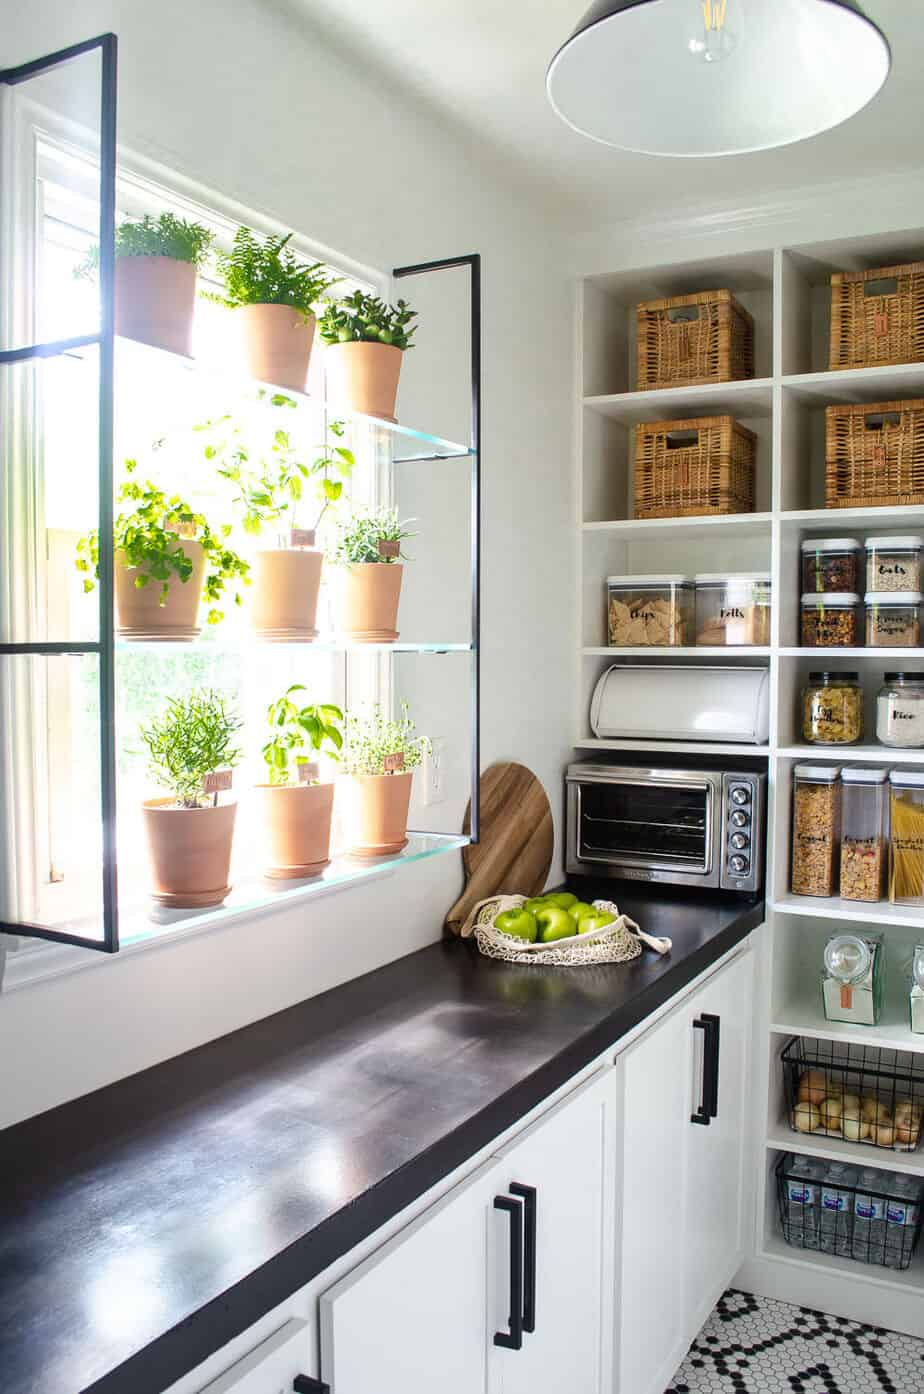 pantry with window herb garden shelf